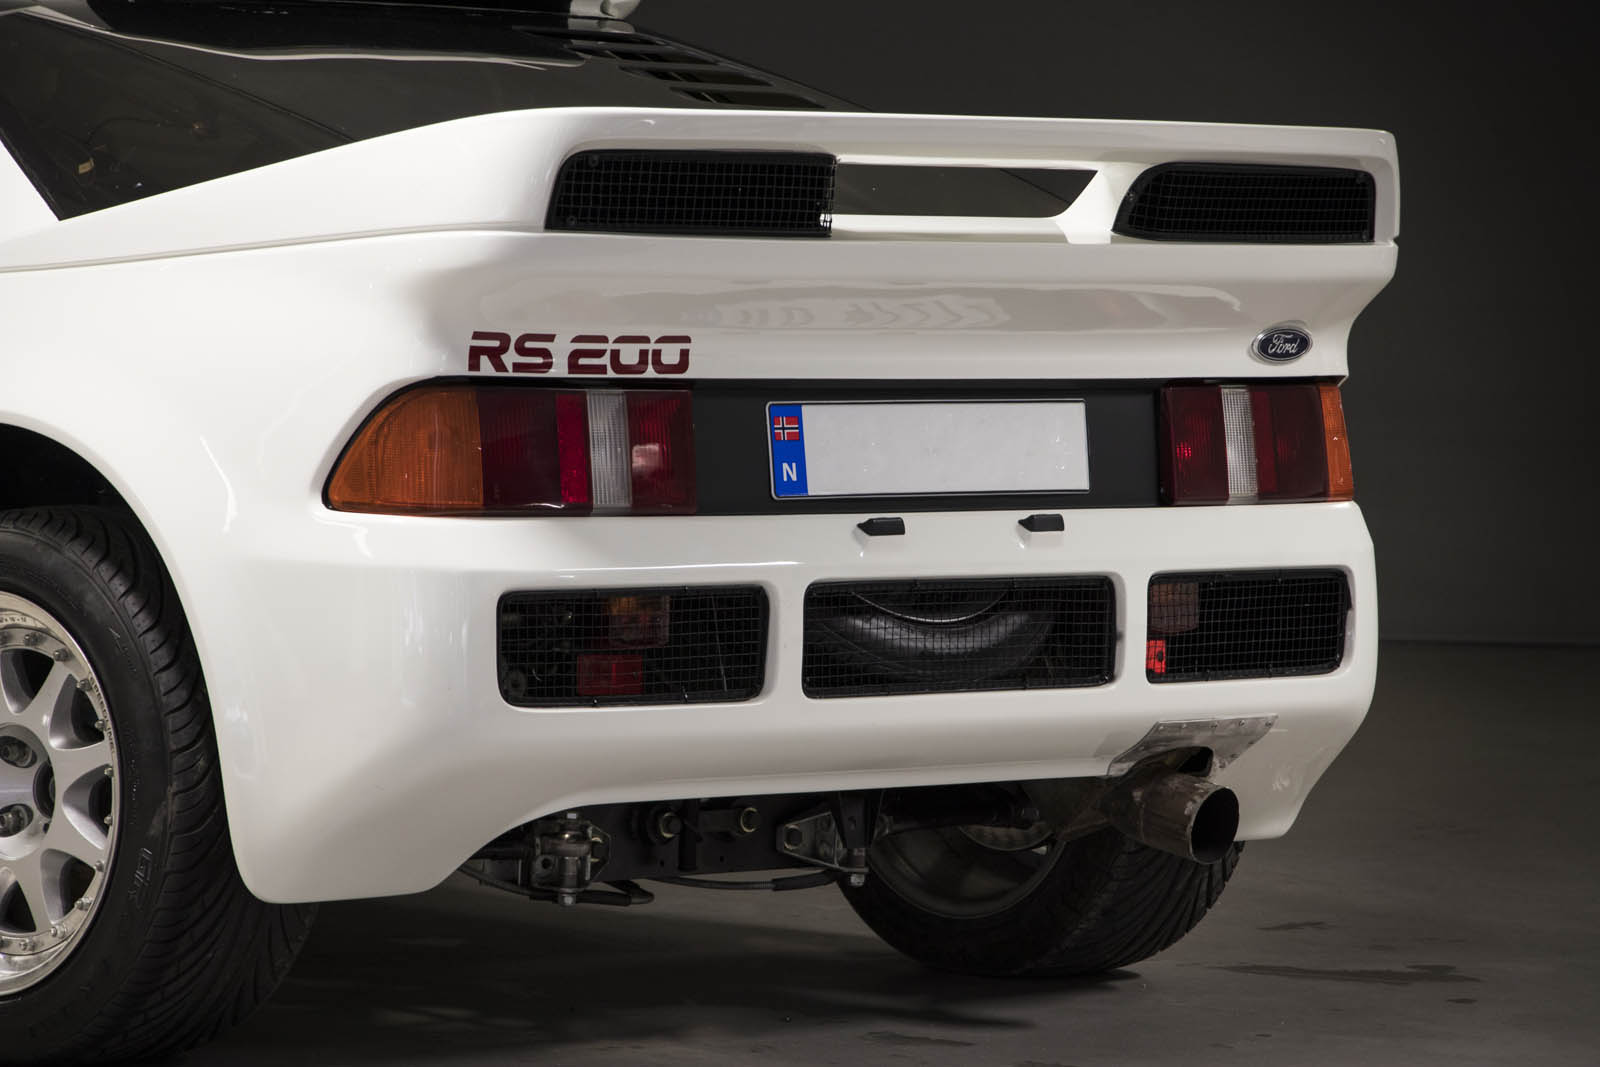 1986-ford-rs200-evolution-01